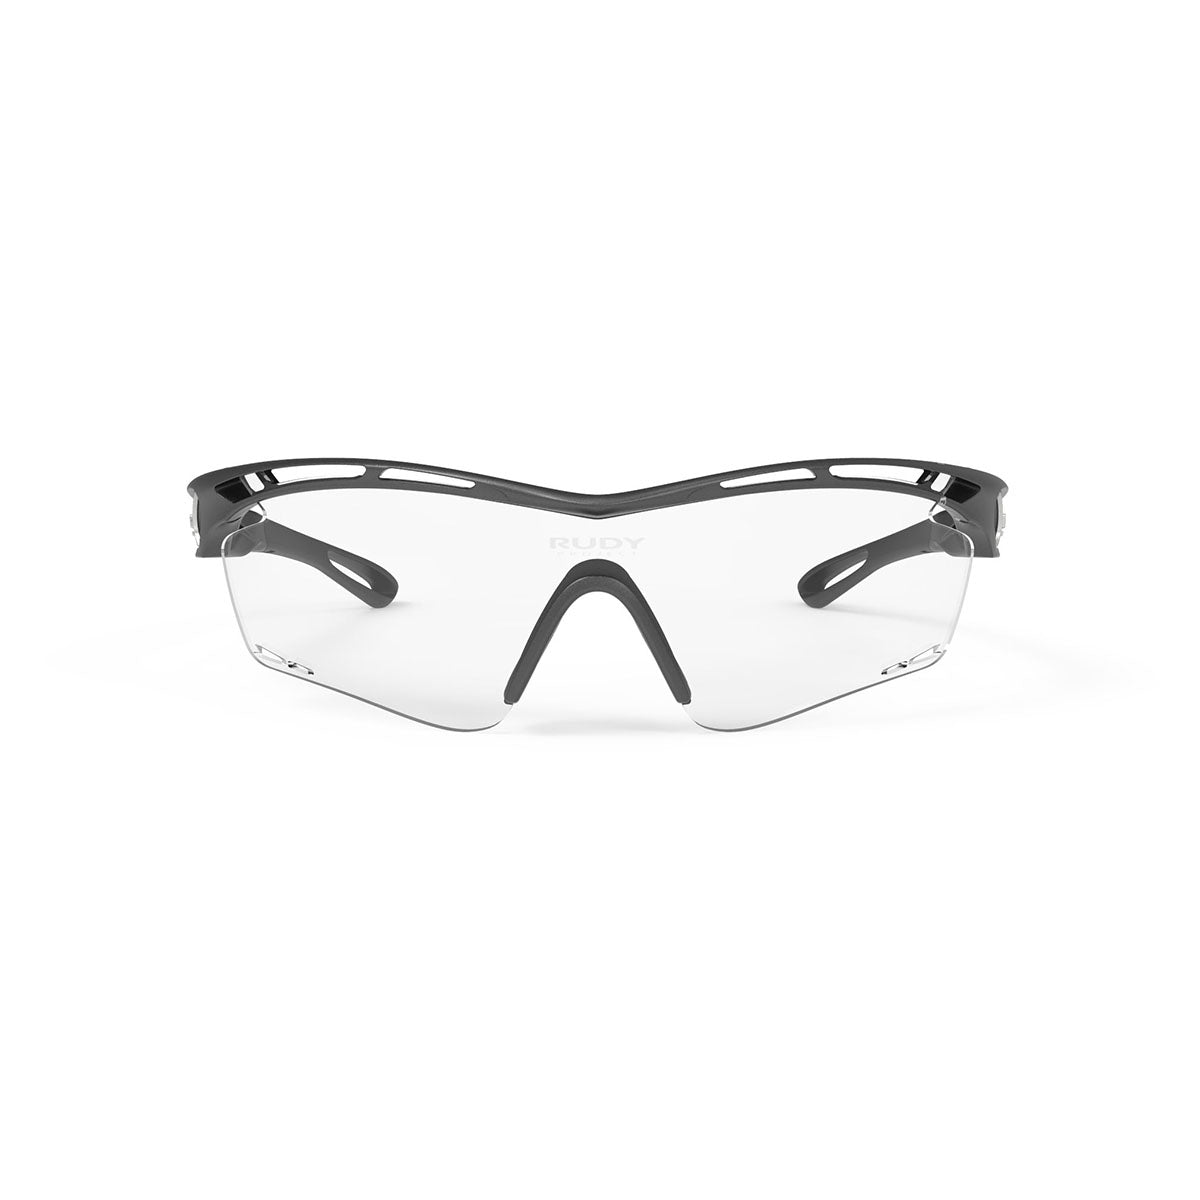 Rudy Project - Tralyx Graphene - frame color: Graphene - lens color: Photochromic clear to black - photo angle: Front View Variant Hover Image